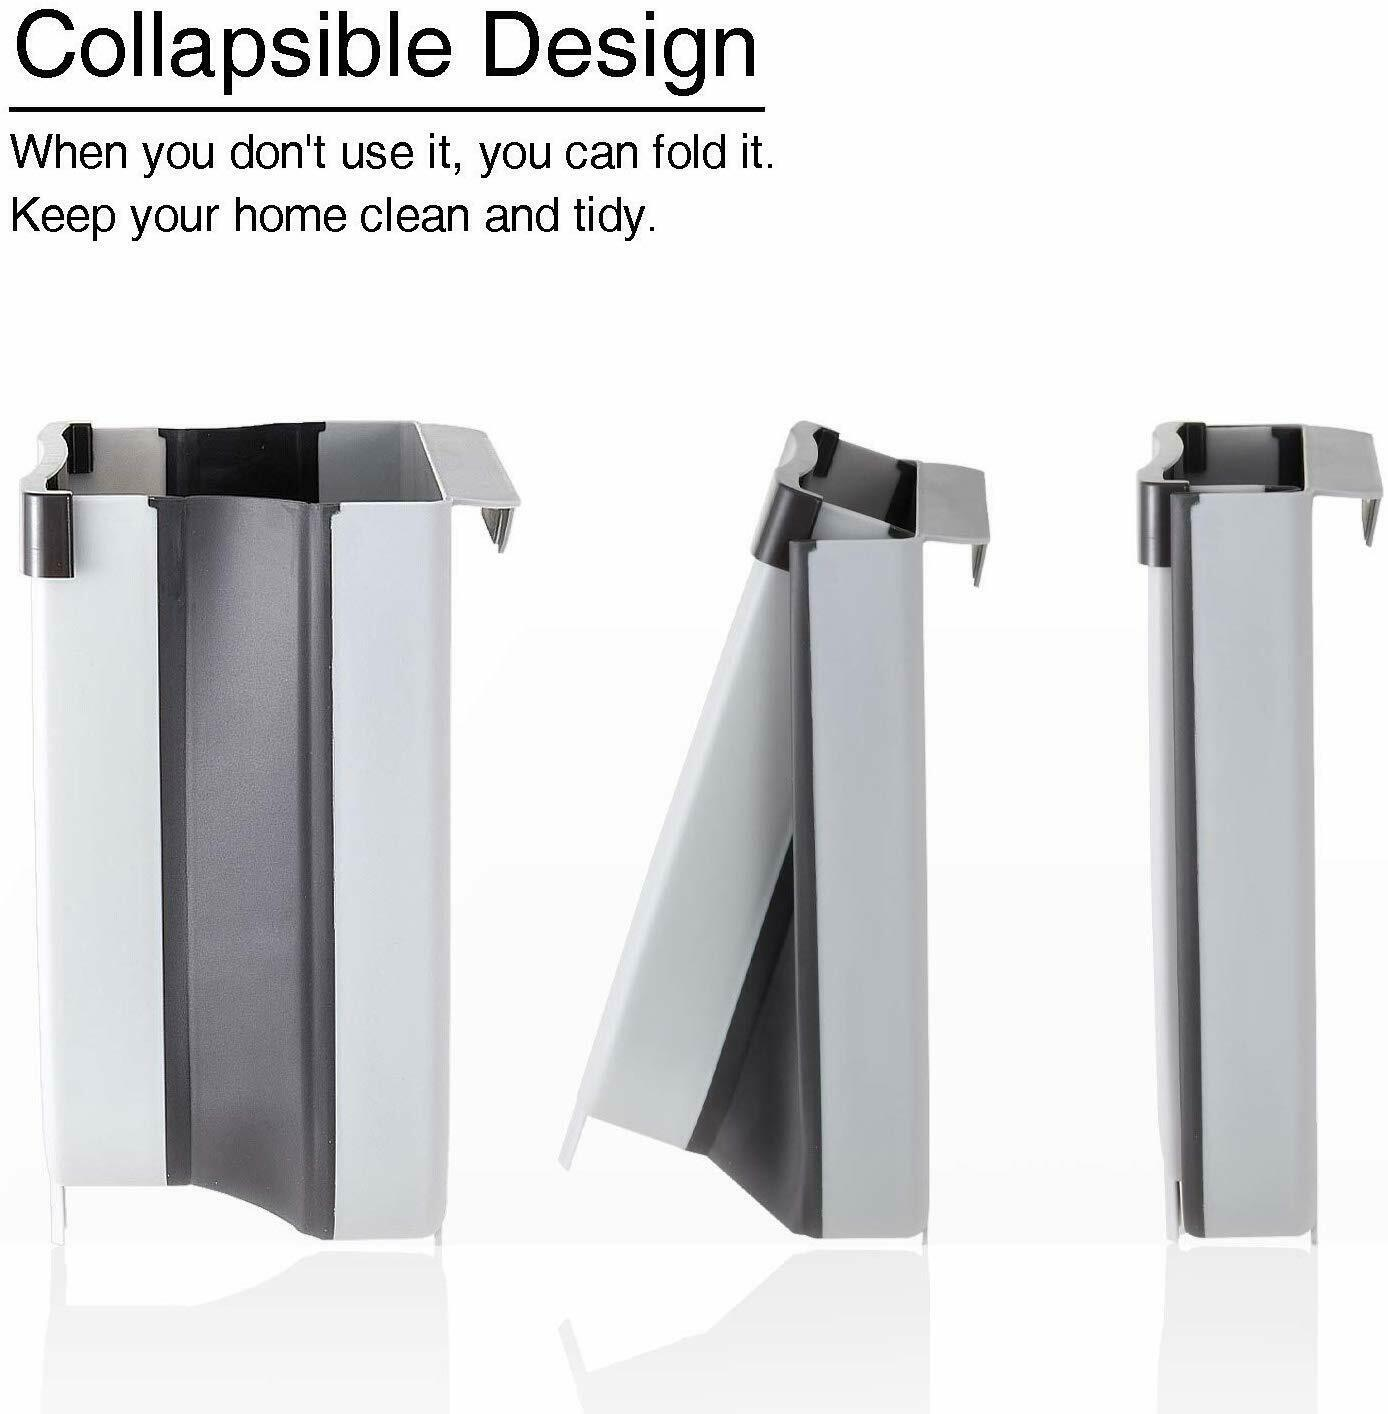 2020 NEW🥳Portable Folding Trash Can【Limited Quantity 50% OFF】